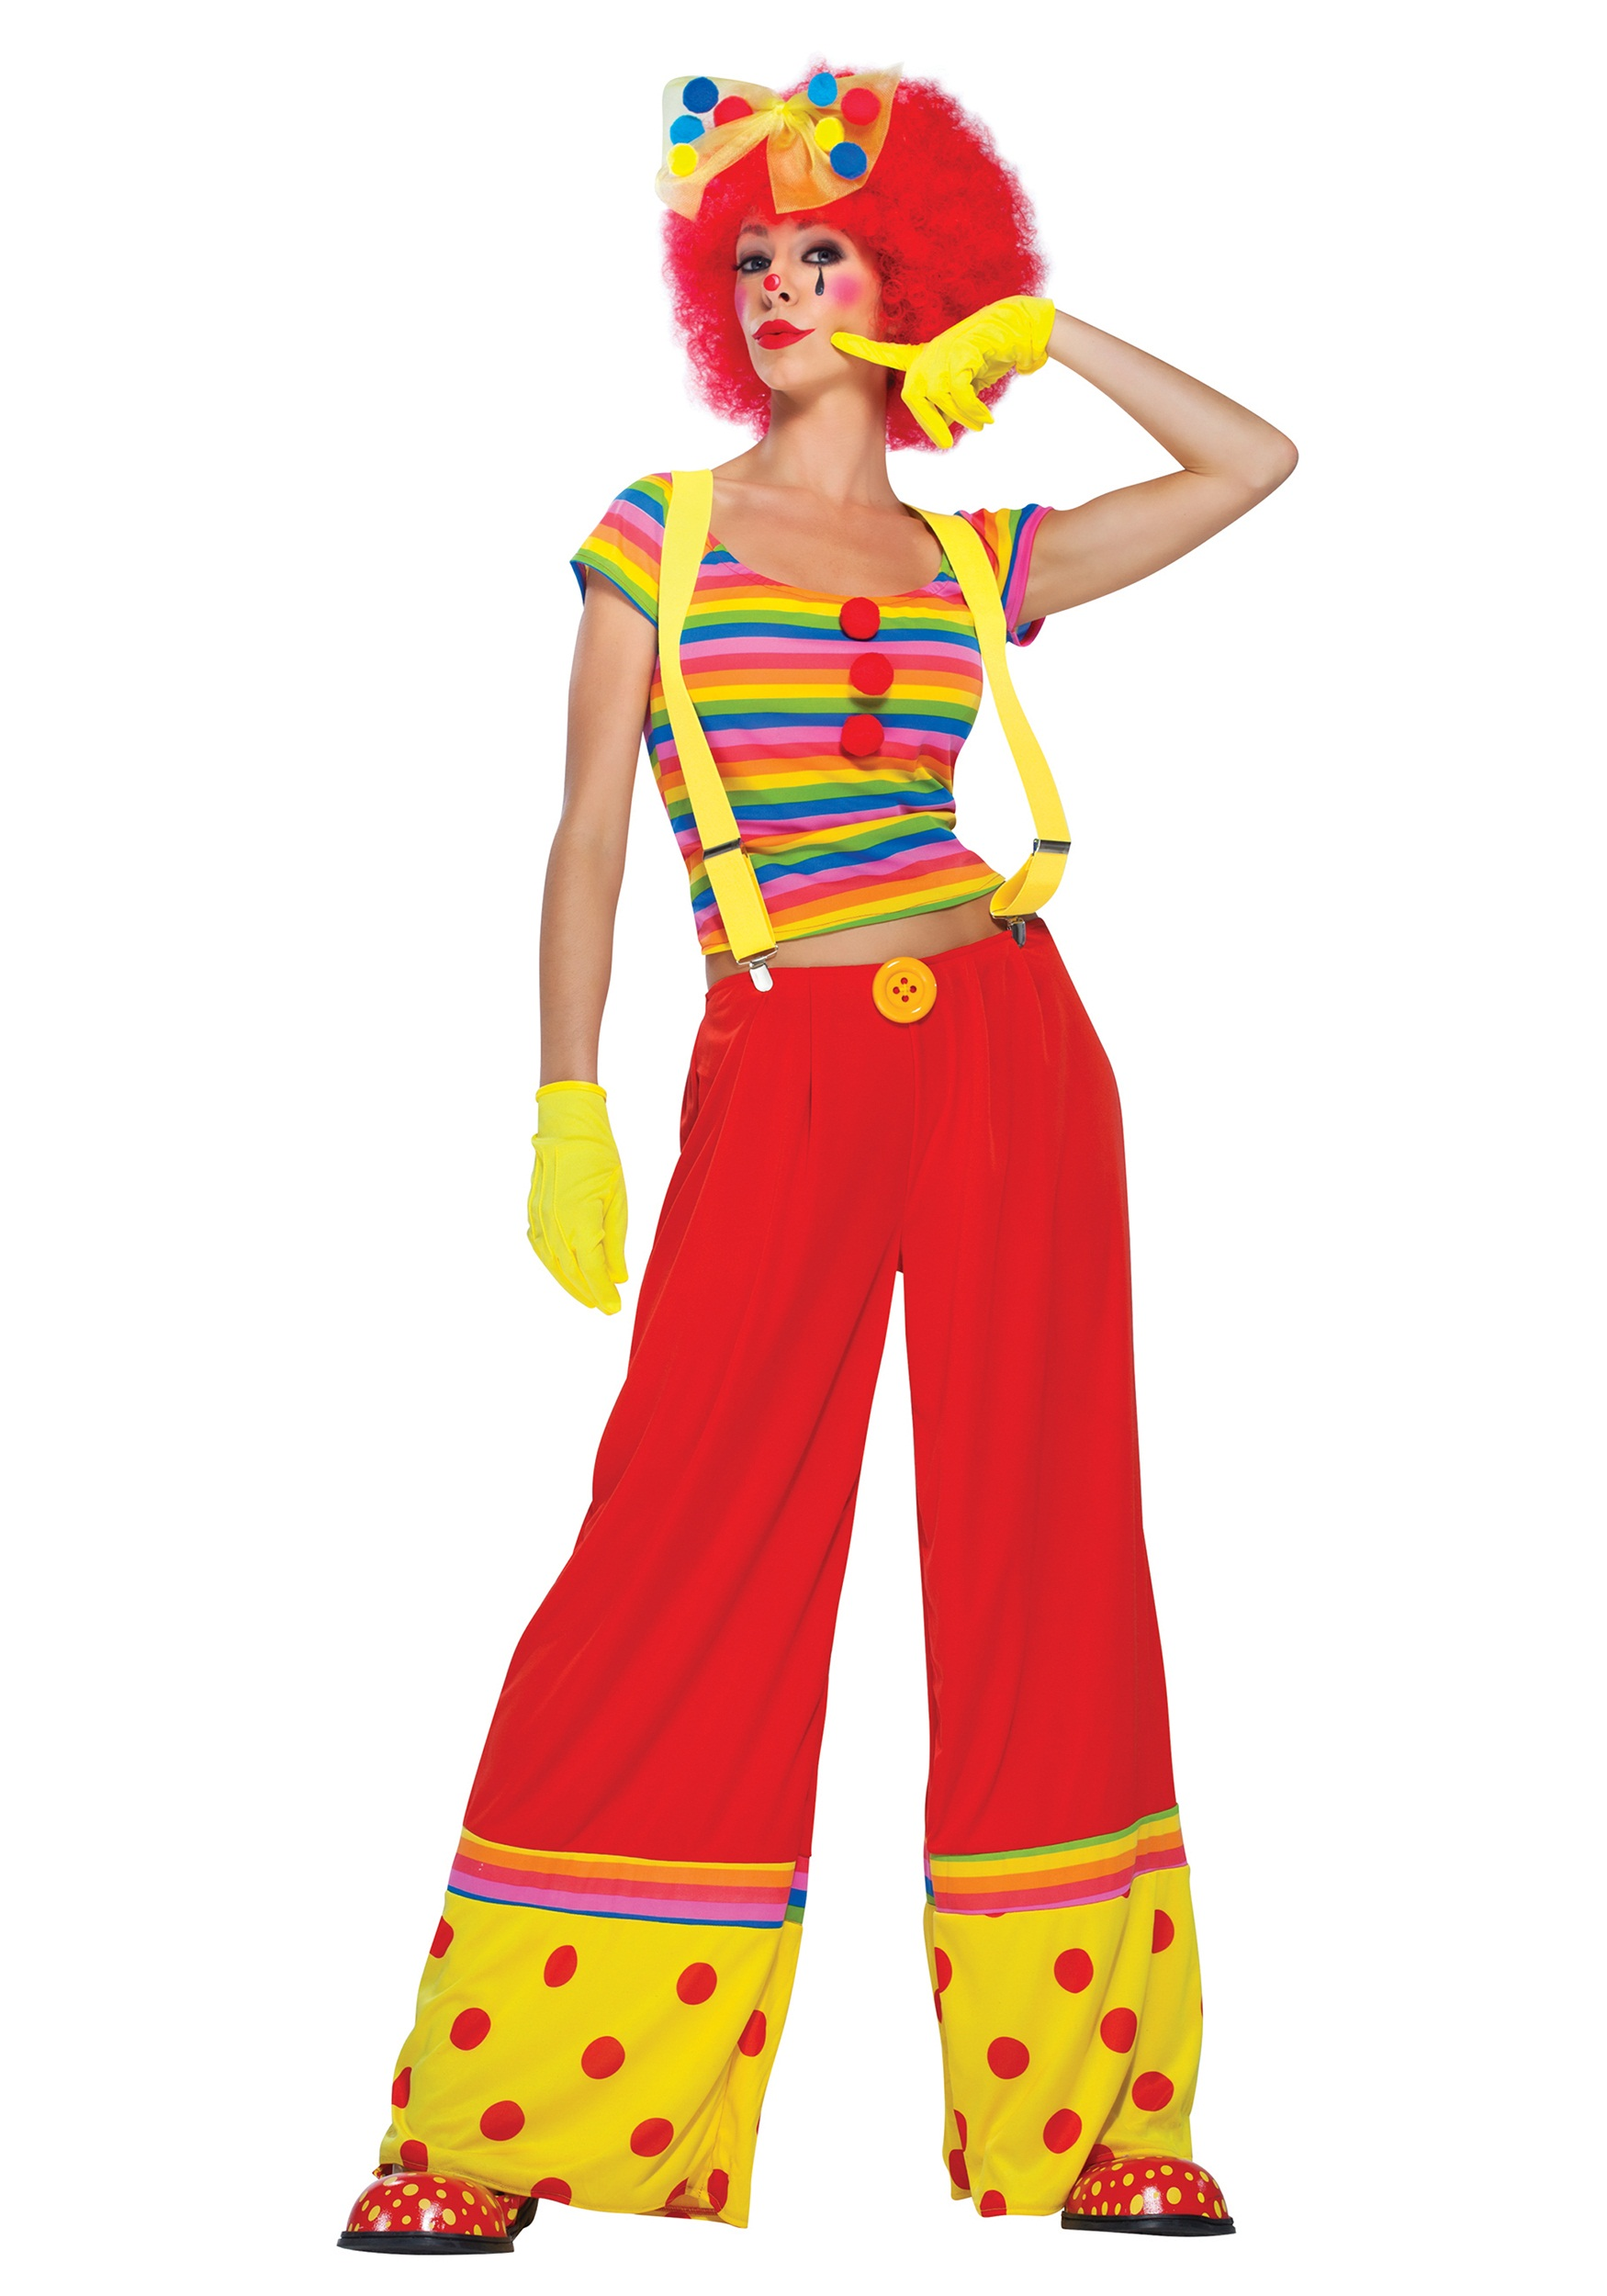 Womens Moppie the Clown Costume  sc 1 st  Halloween Costumes & Womens Moppie the Clown Costume - Halloween Costumes